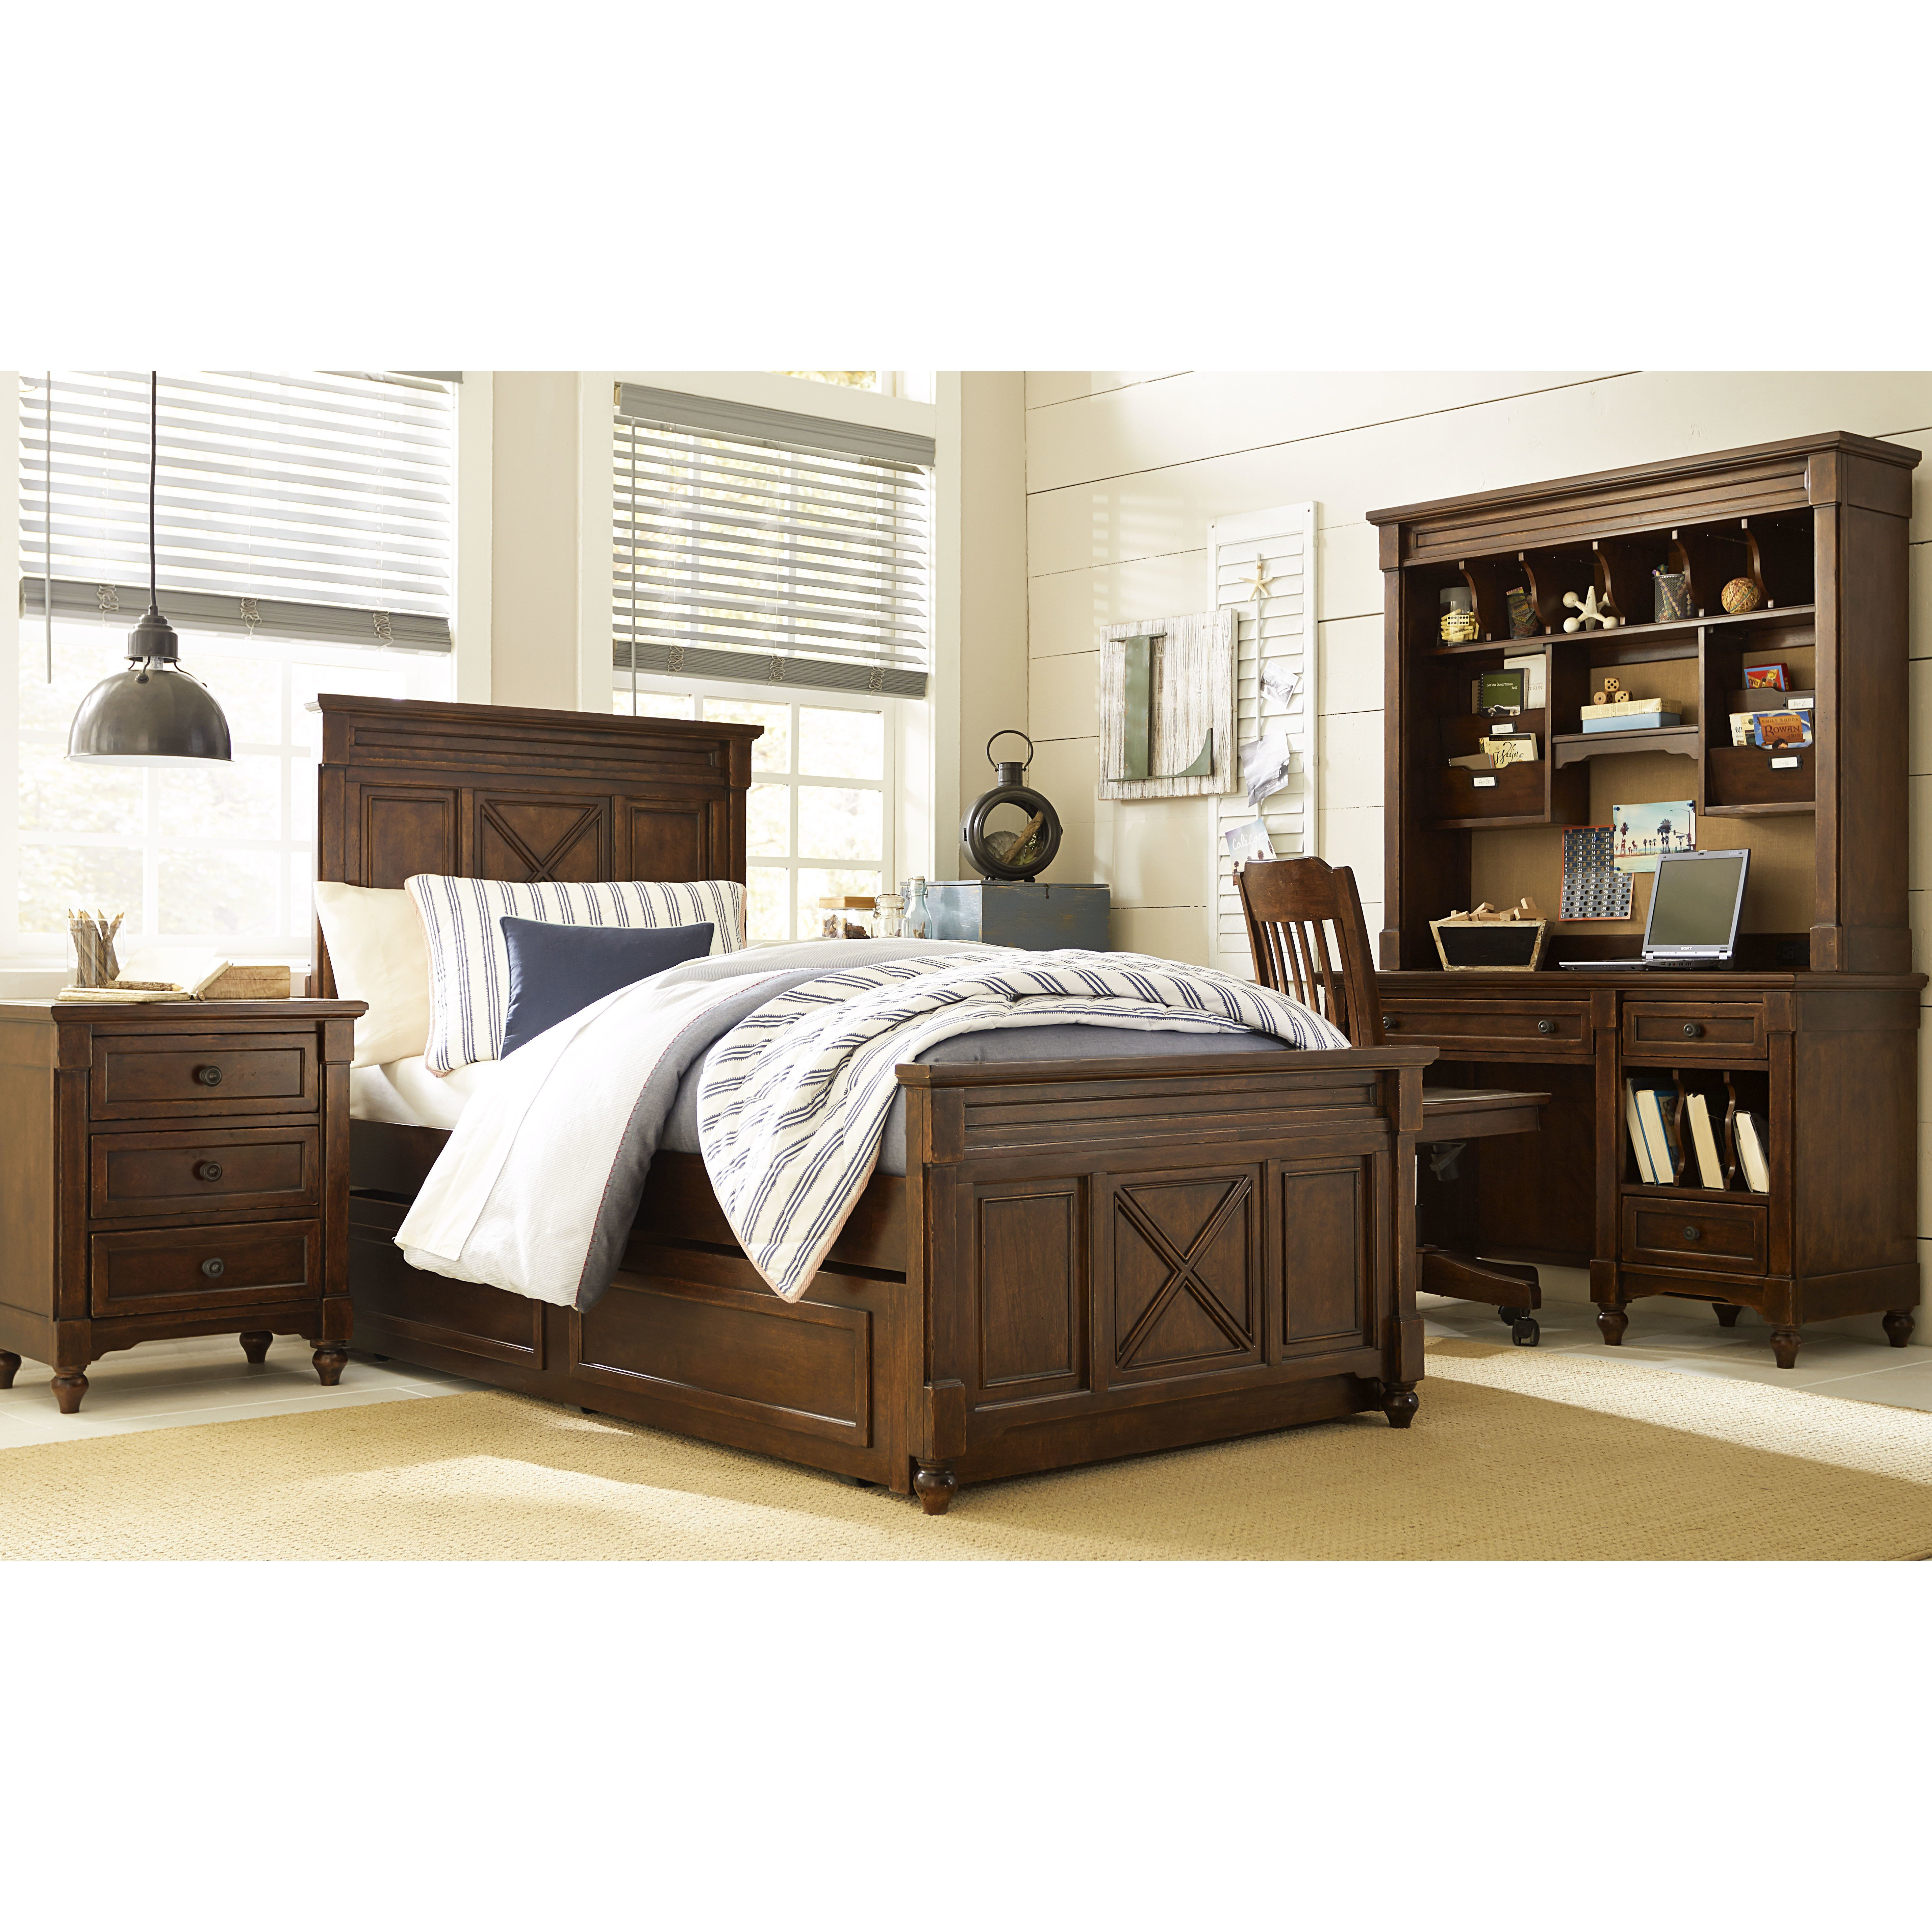 Best Lc Kids Big Sur By Wendy Bellissimo Twin Panel Customizable Bedroom Set Reviews Wayfair With Pictures